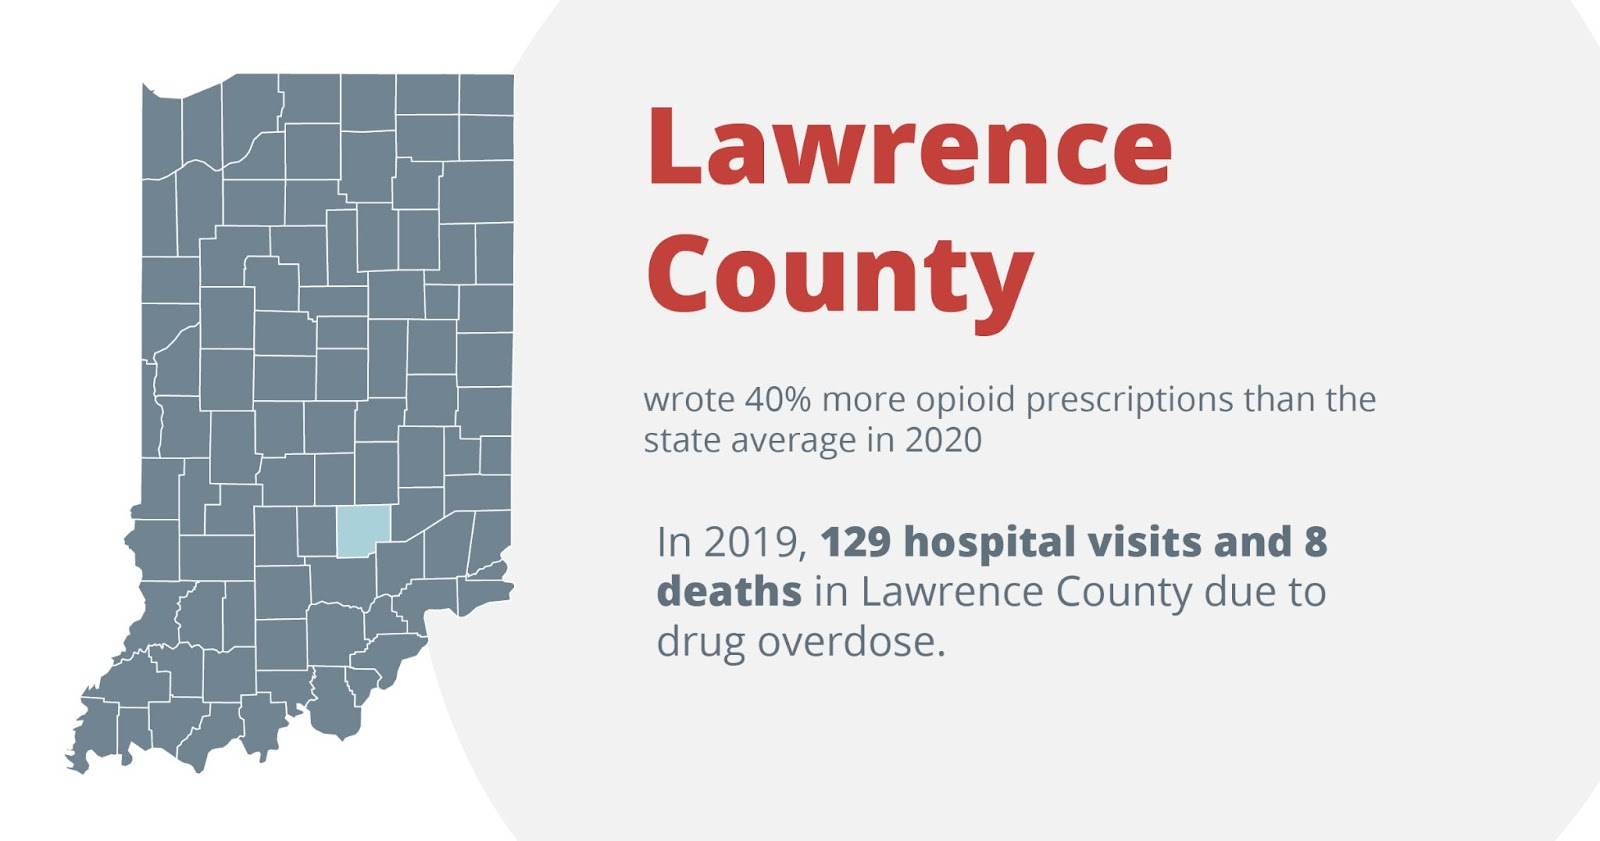 Lawrence county wrote 40% more opioid prescriptions than the state average in 2020. In 2019, 129 hospital visits and 8 deaths in lawrence county due to drug overdose